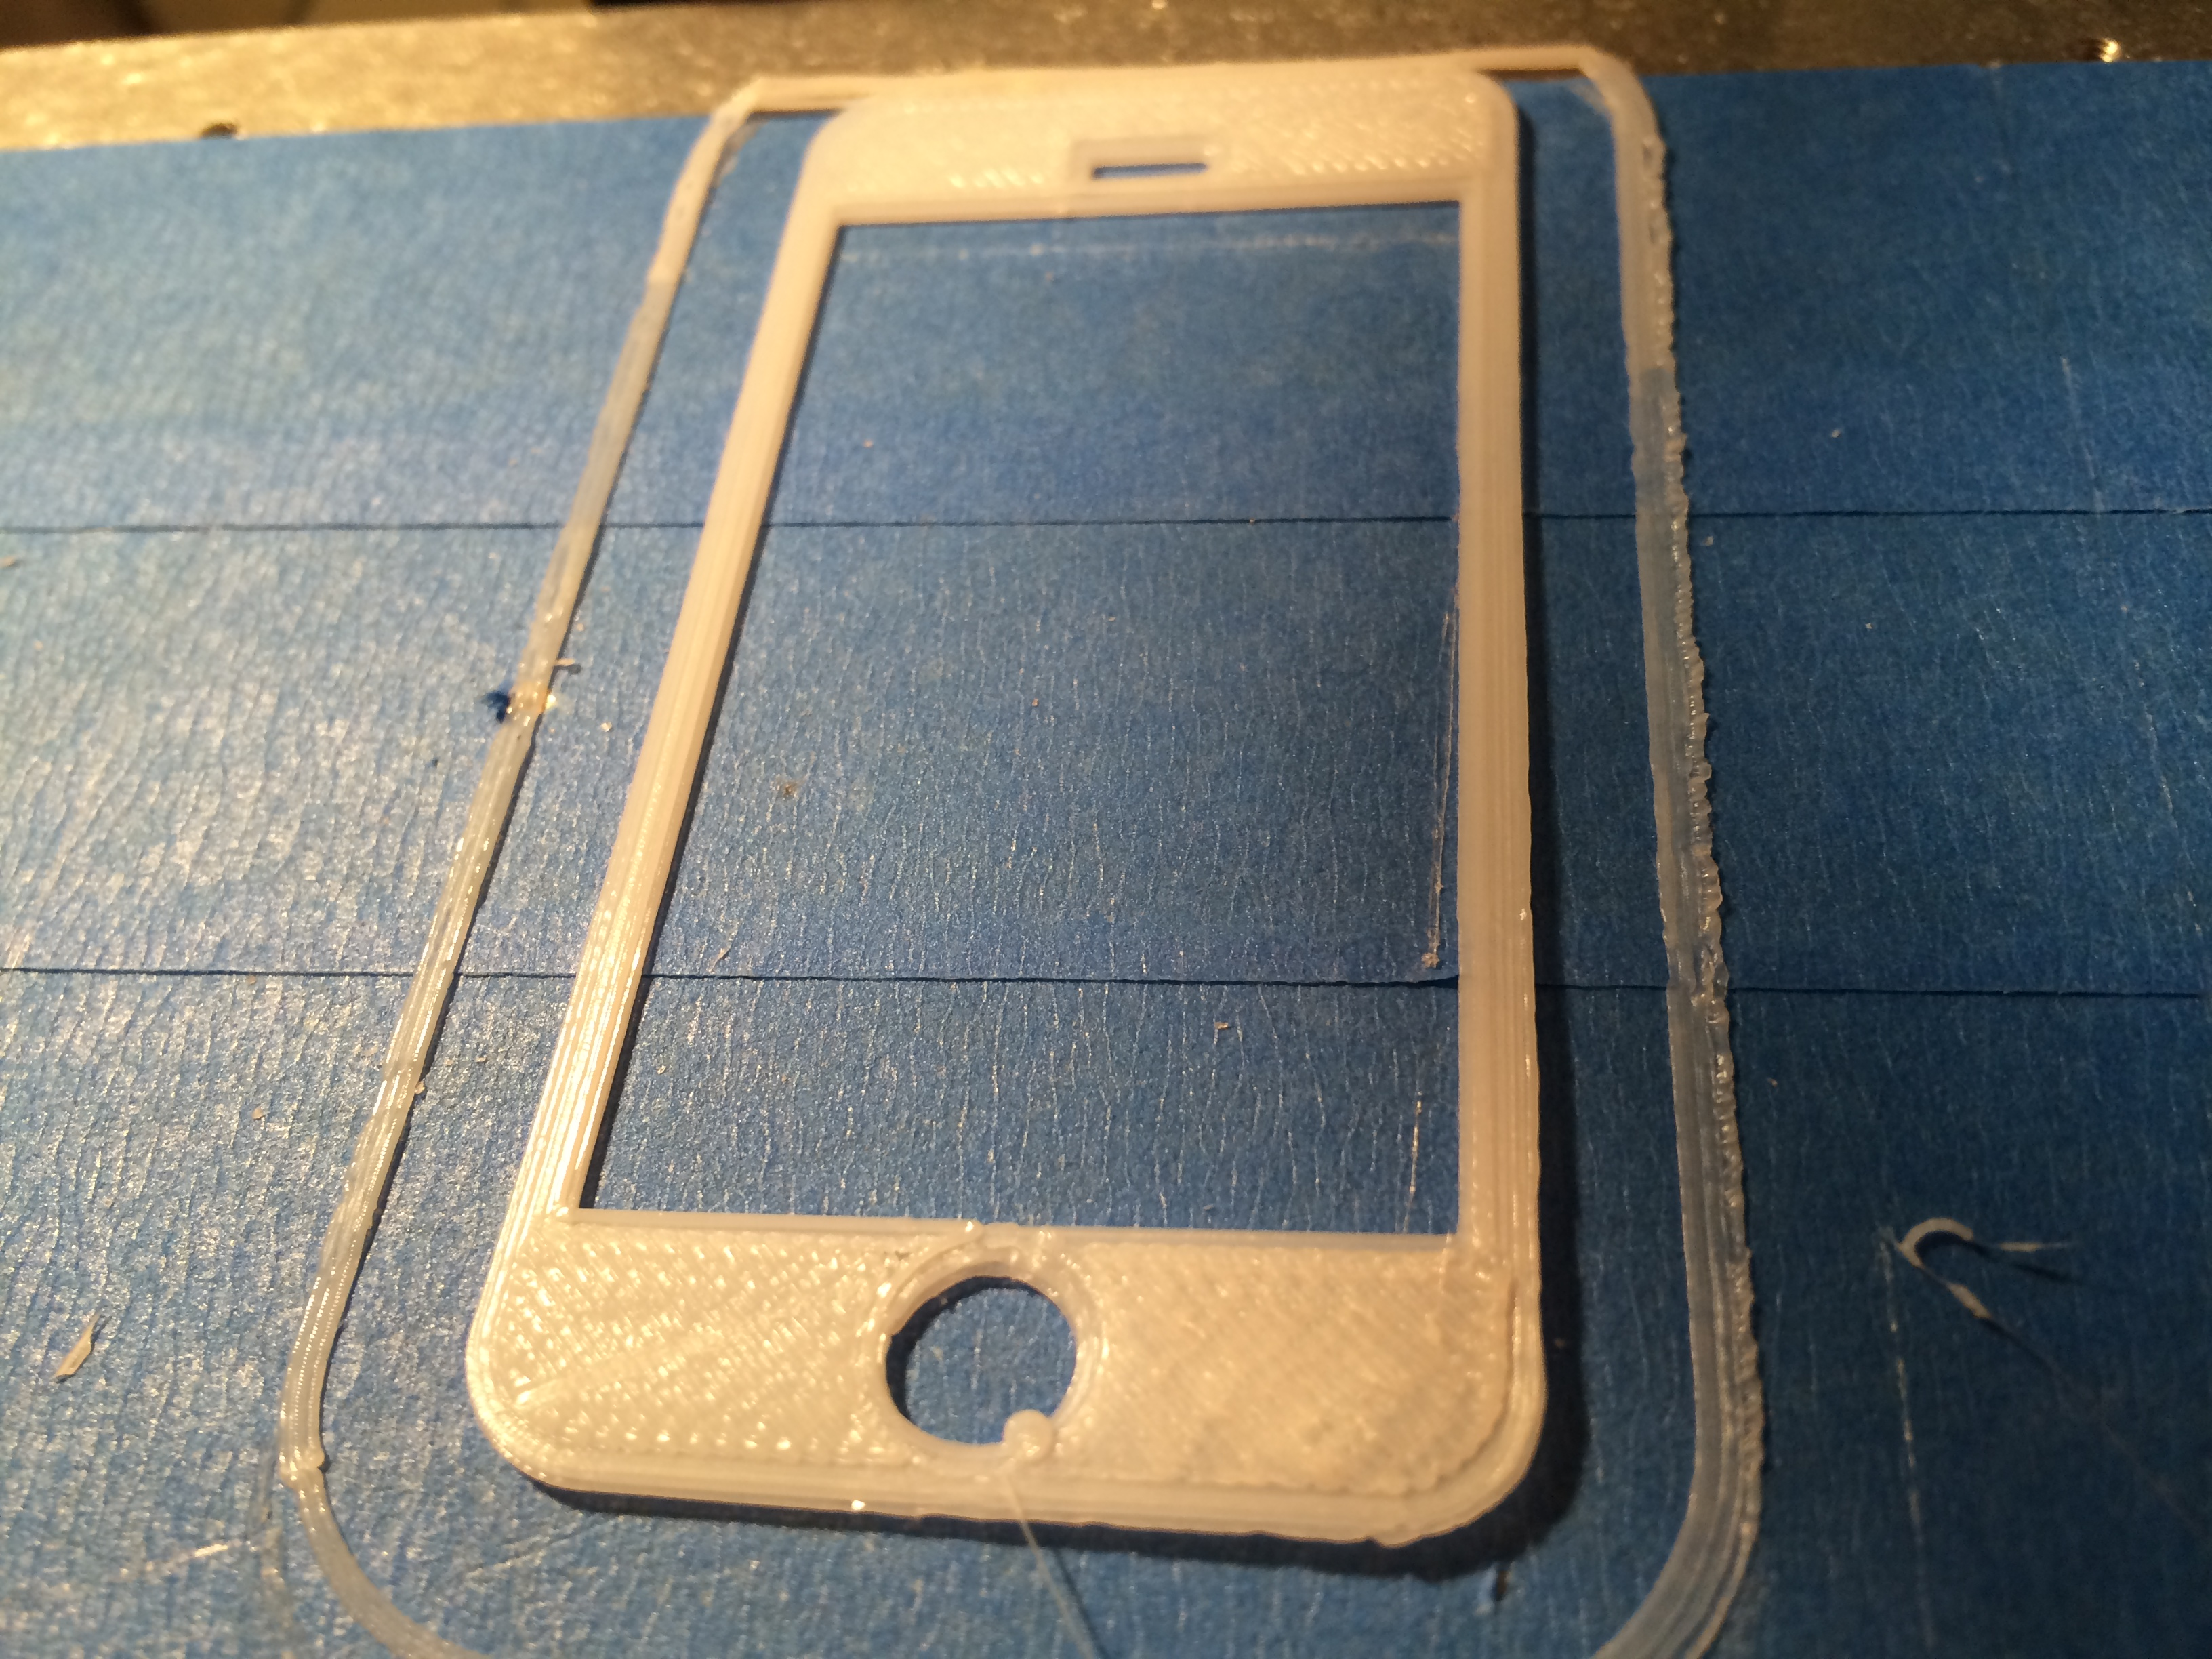 3d printed iPhone stencil for protyping